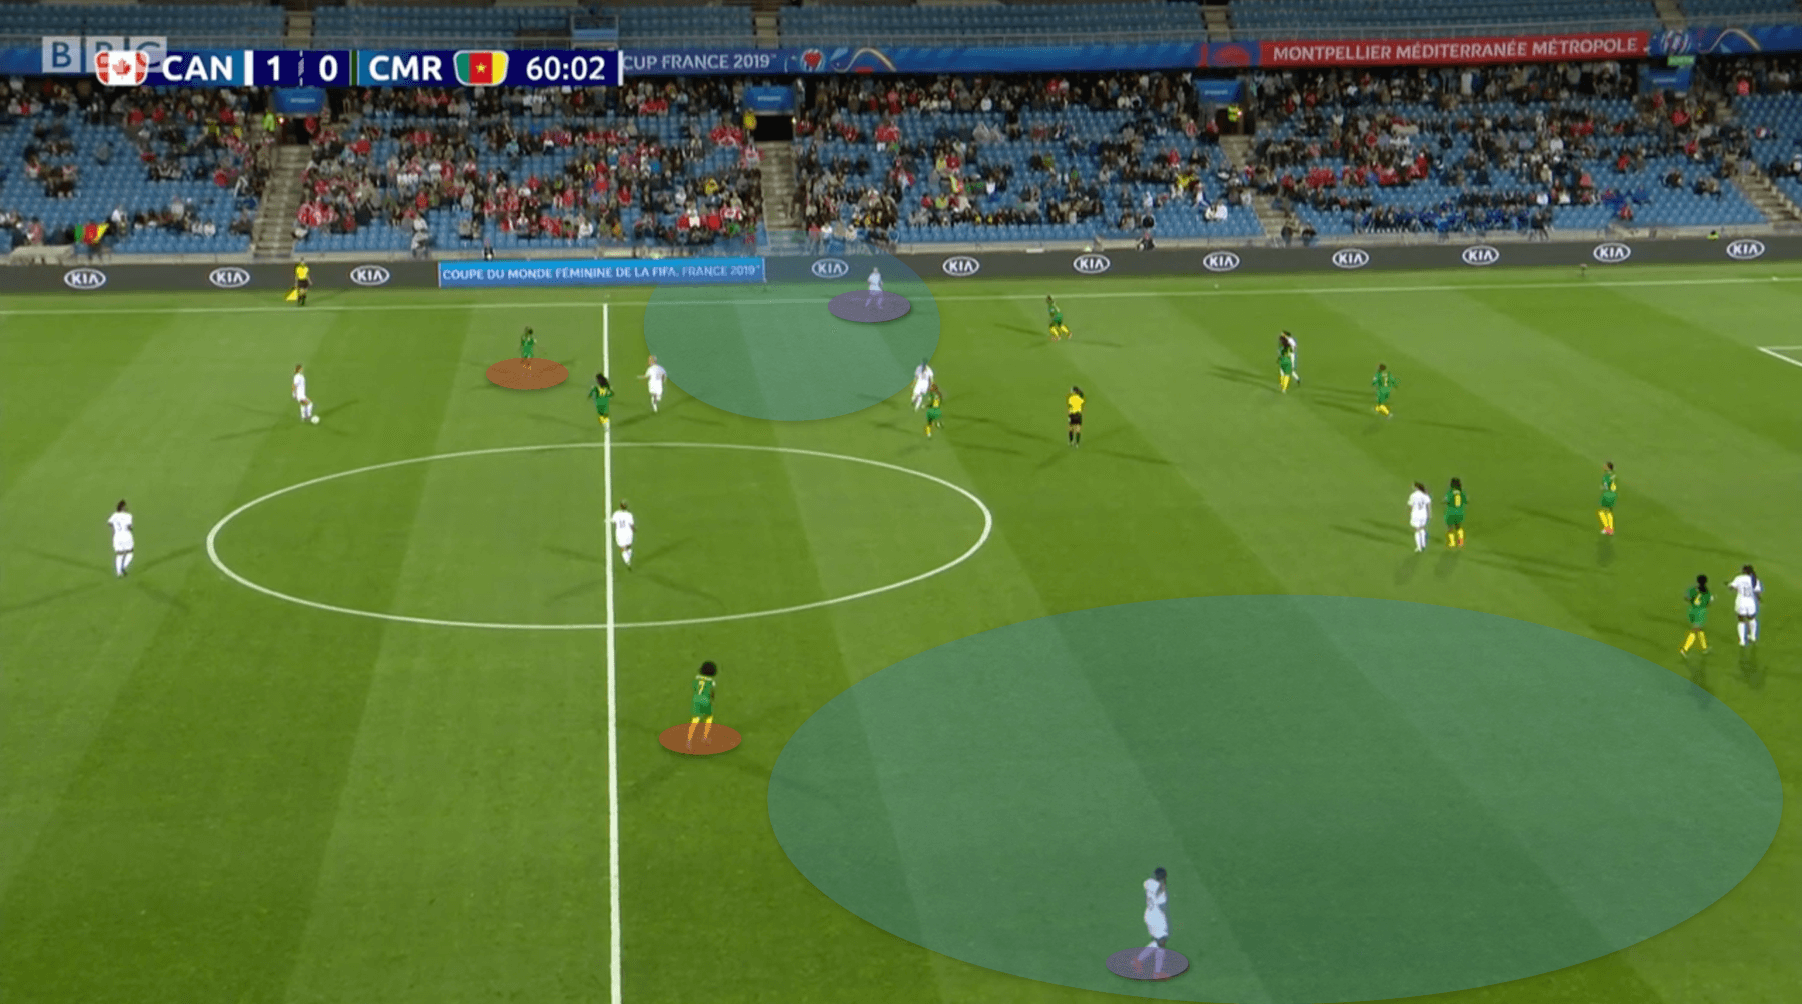 FIFA Women's World Cup 2019 Match Preview: Netherlands vs Cameroon